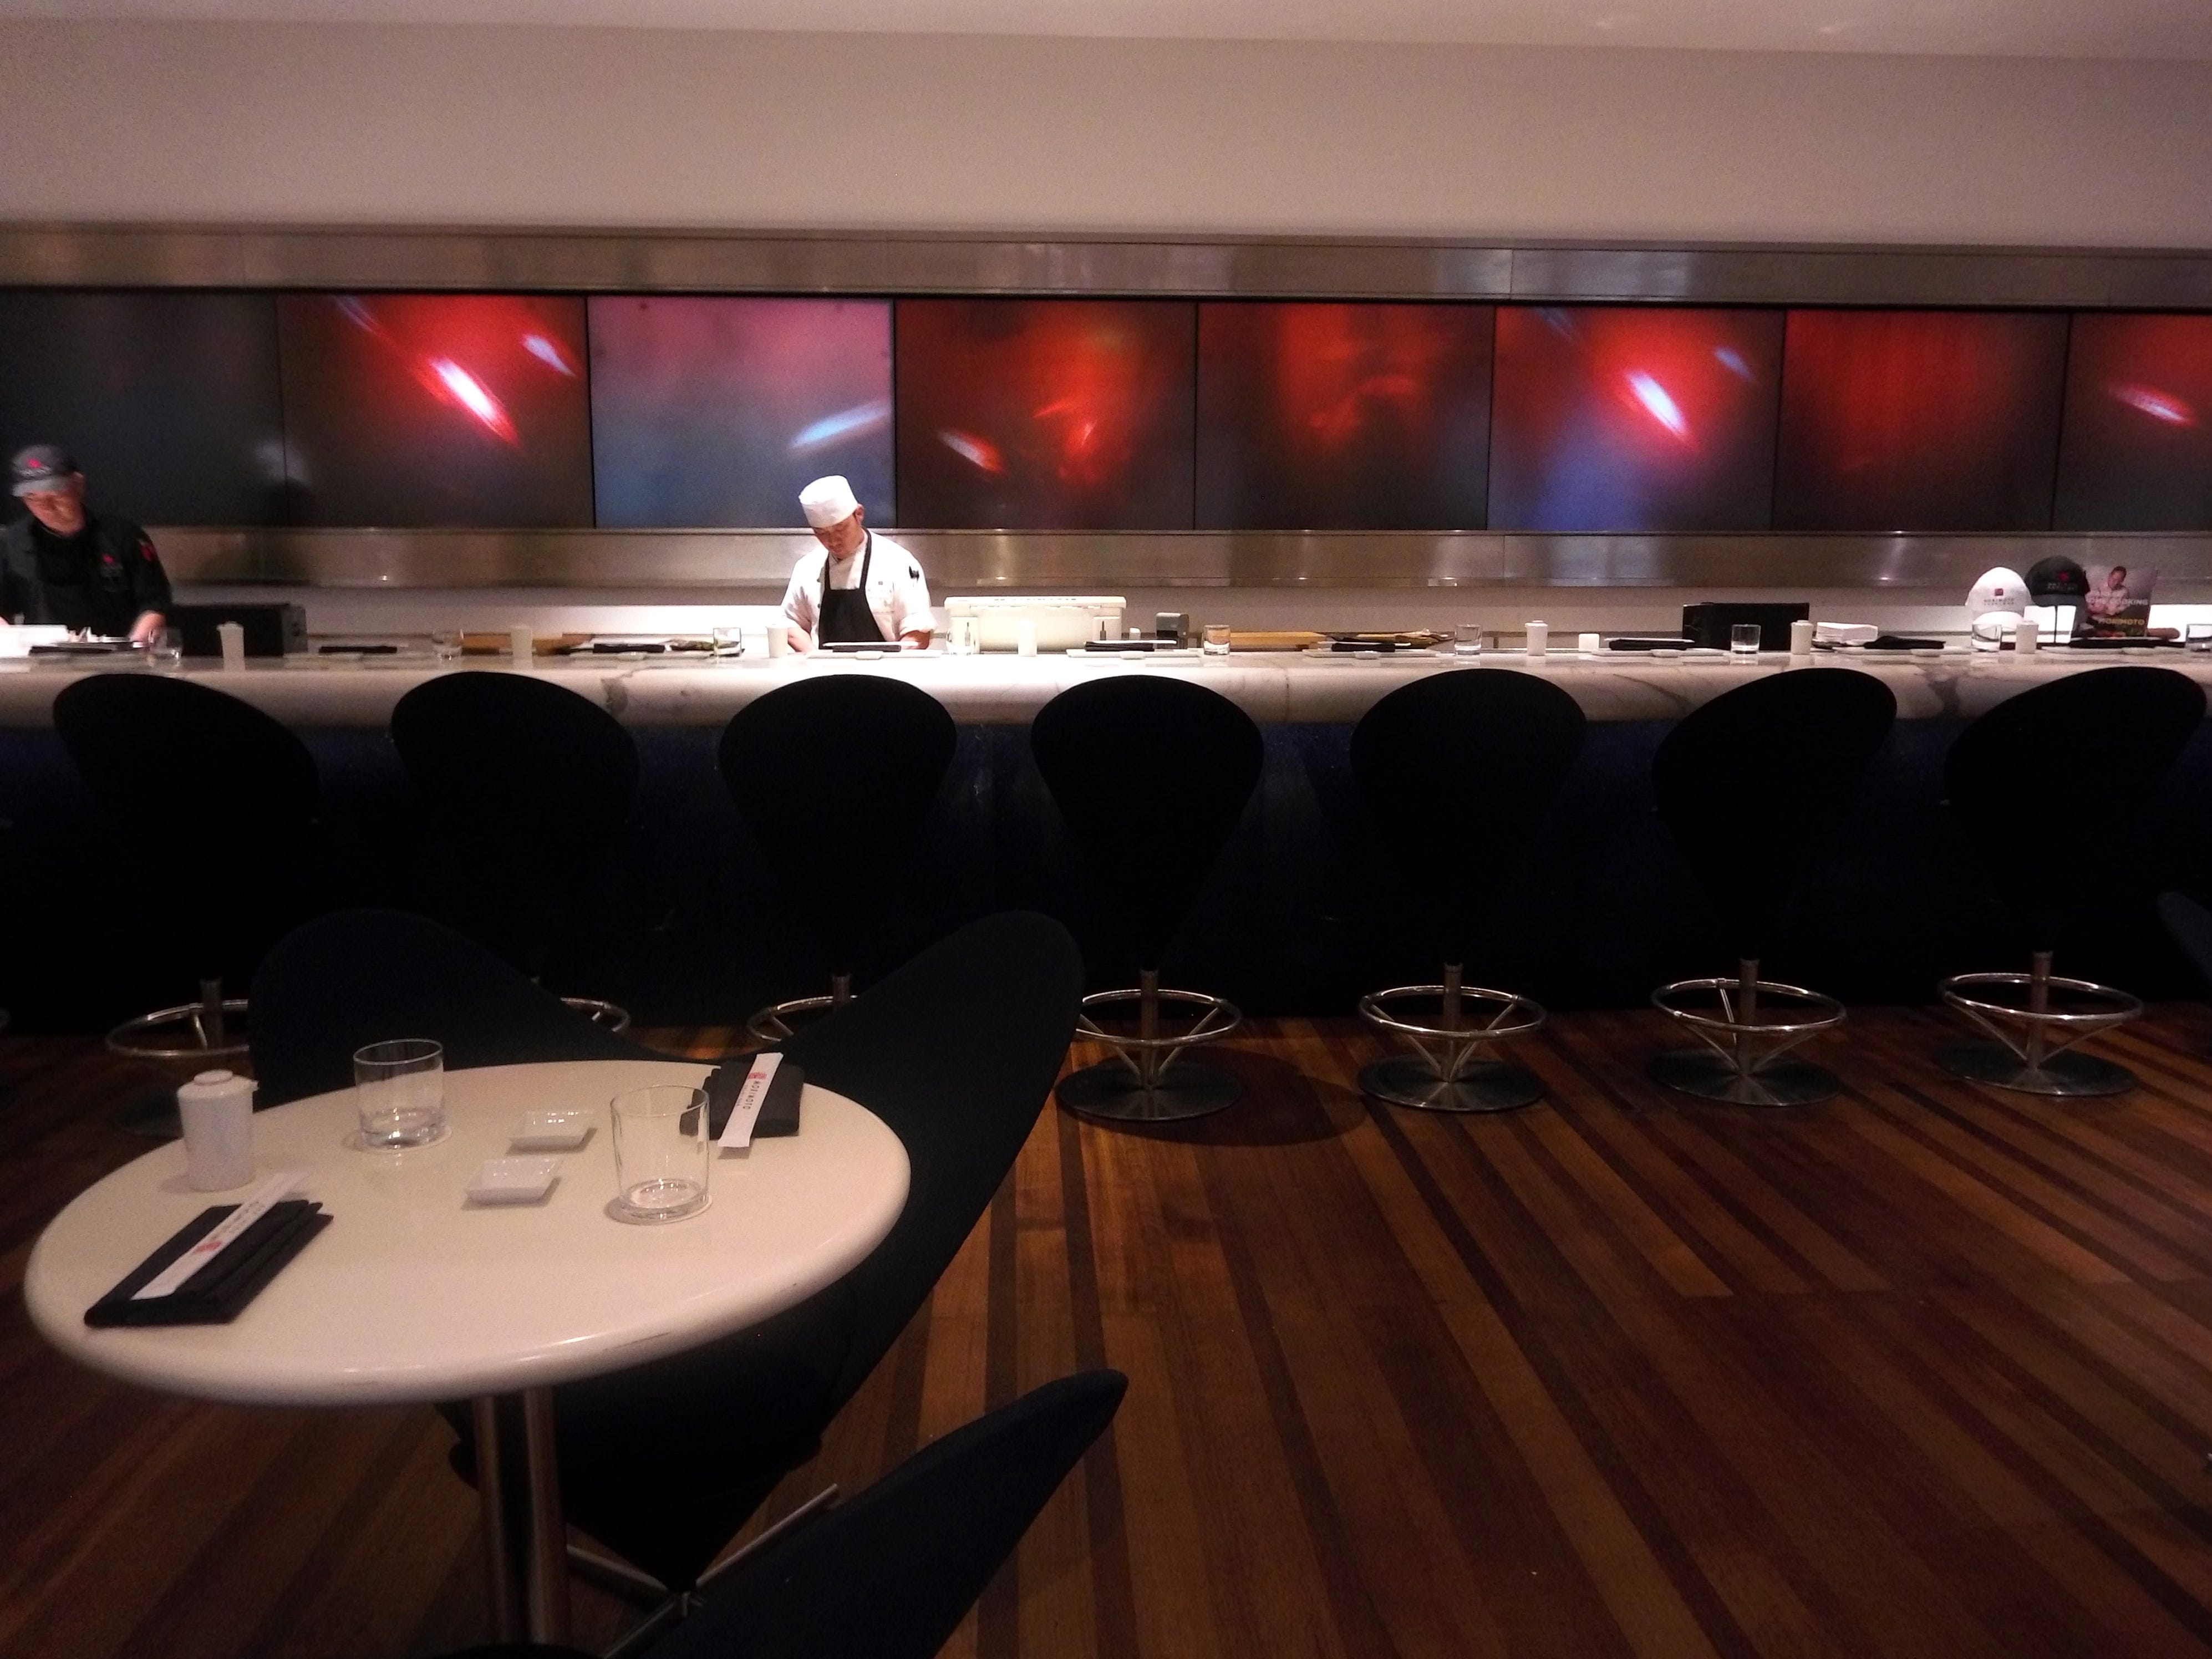 A chef prepares for the evening at Morimoto's Sushi Bar, which opened in Boca Raton Resort & Club in 2007.